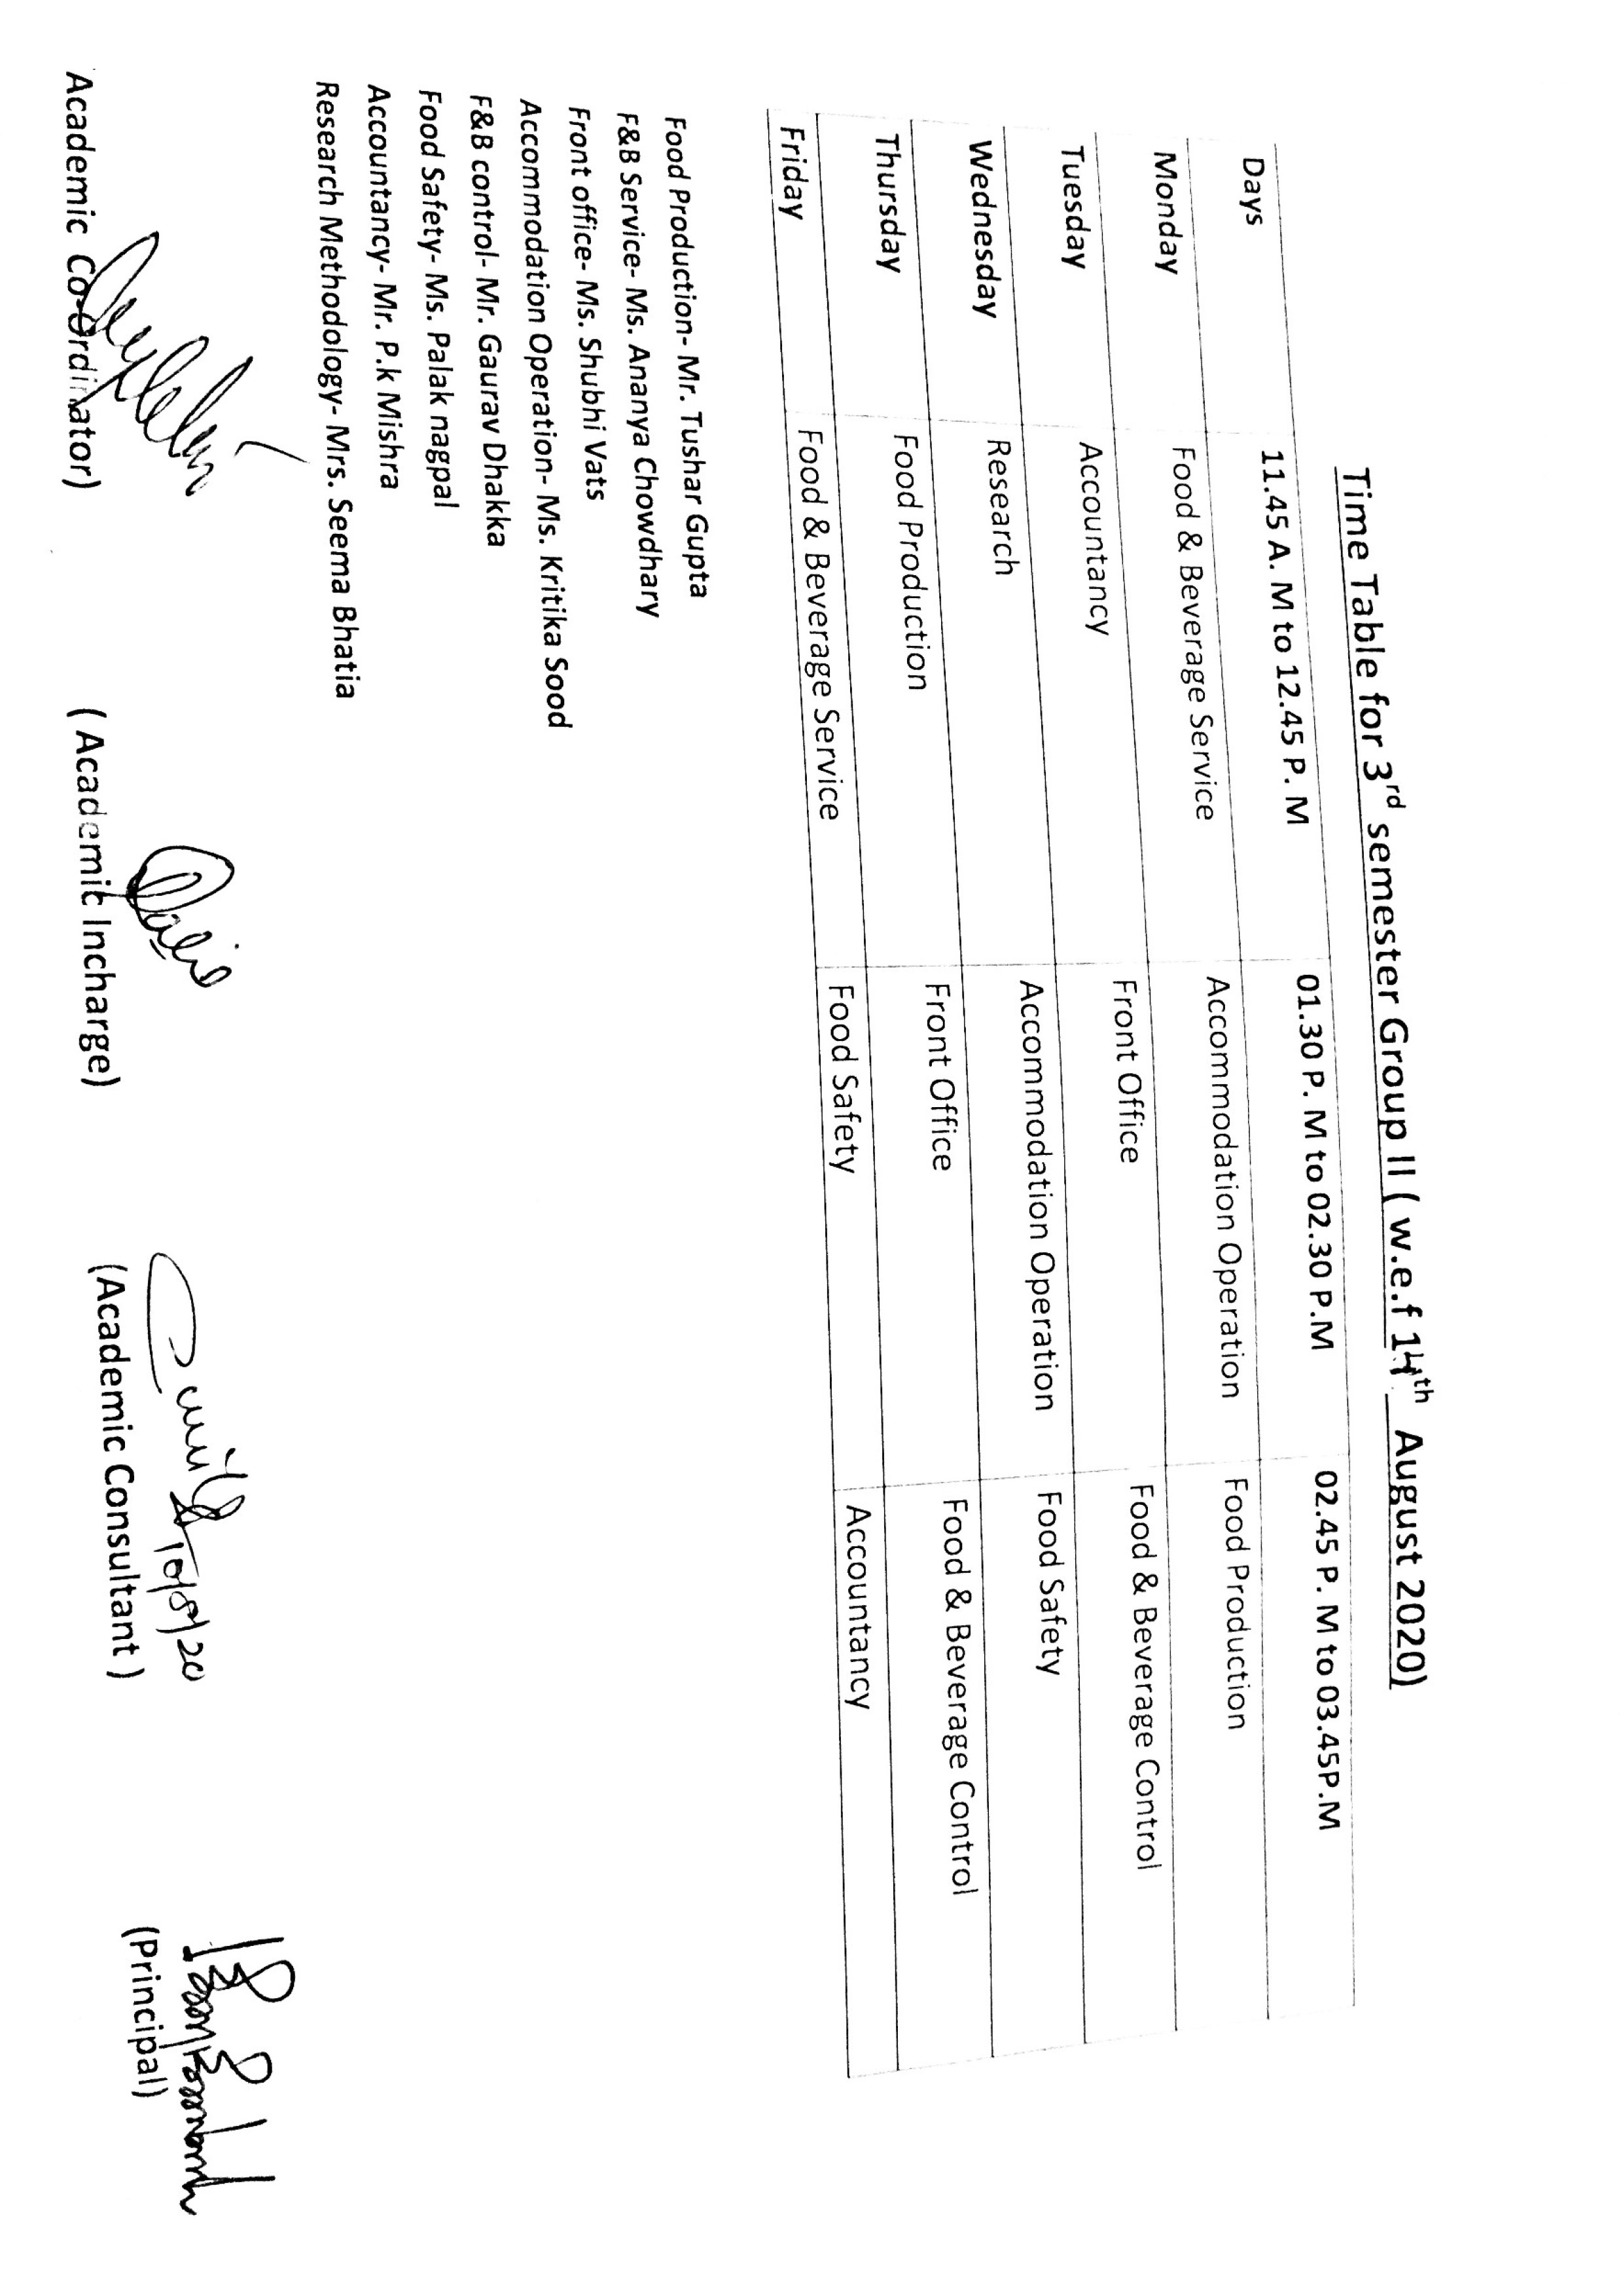 Time table of 3rd and 5th semester wef 14th August,2020